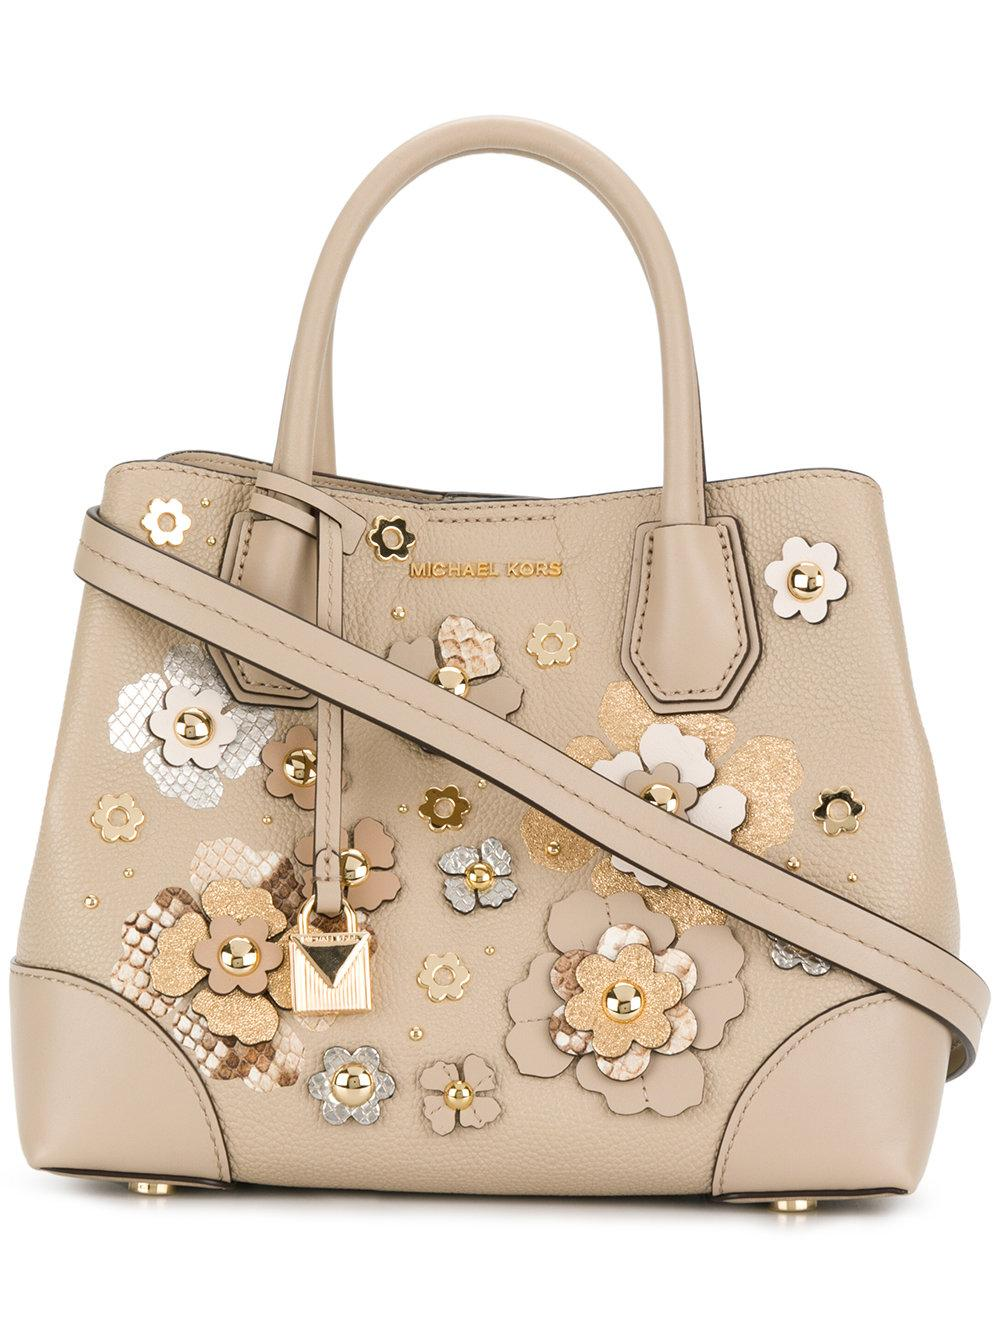 6aa40863cbf0 Michael Michael Kors Mercer Gallery Small Tote - Nude & Neutrals ...